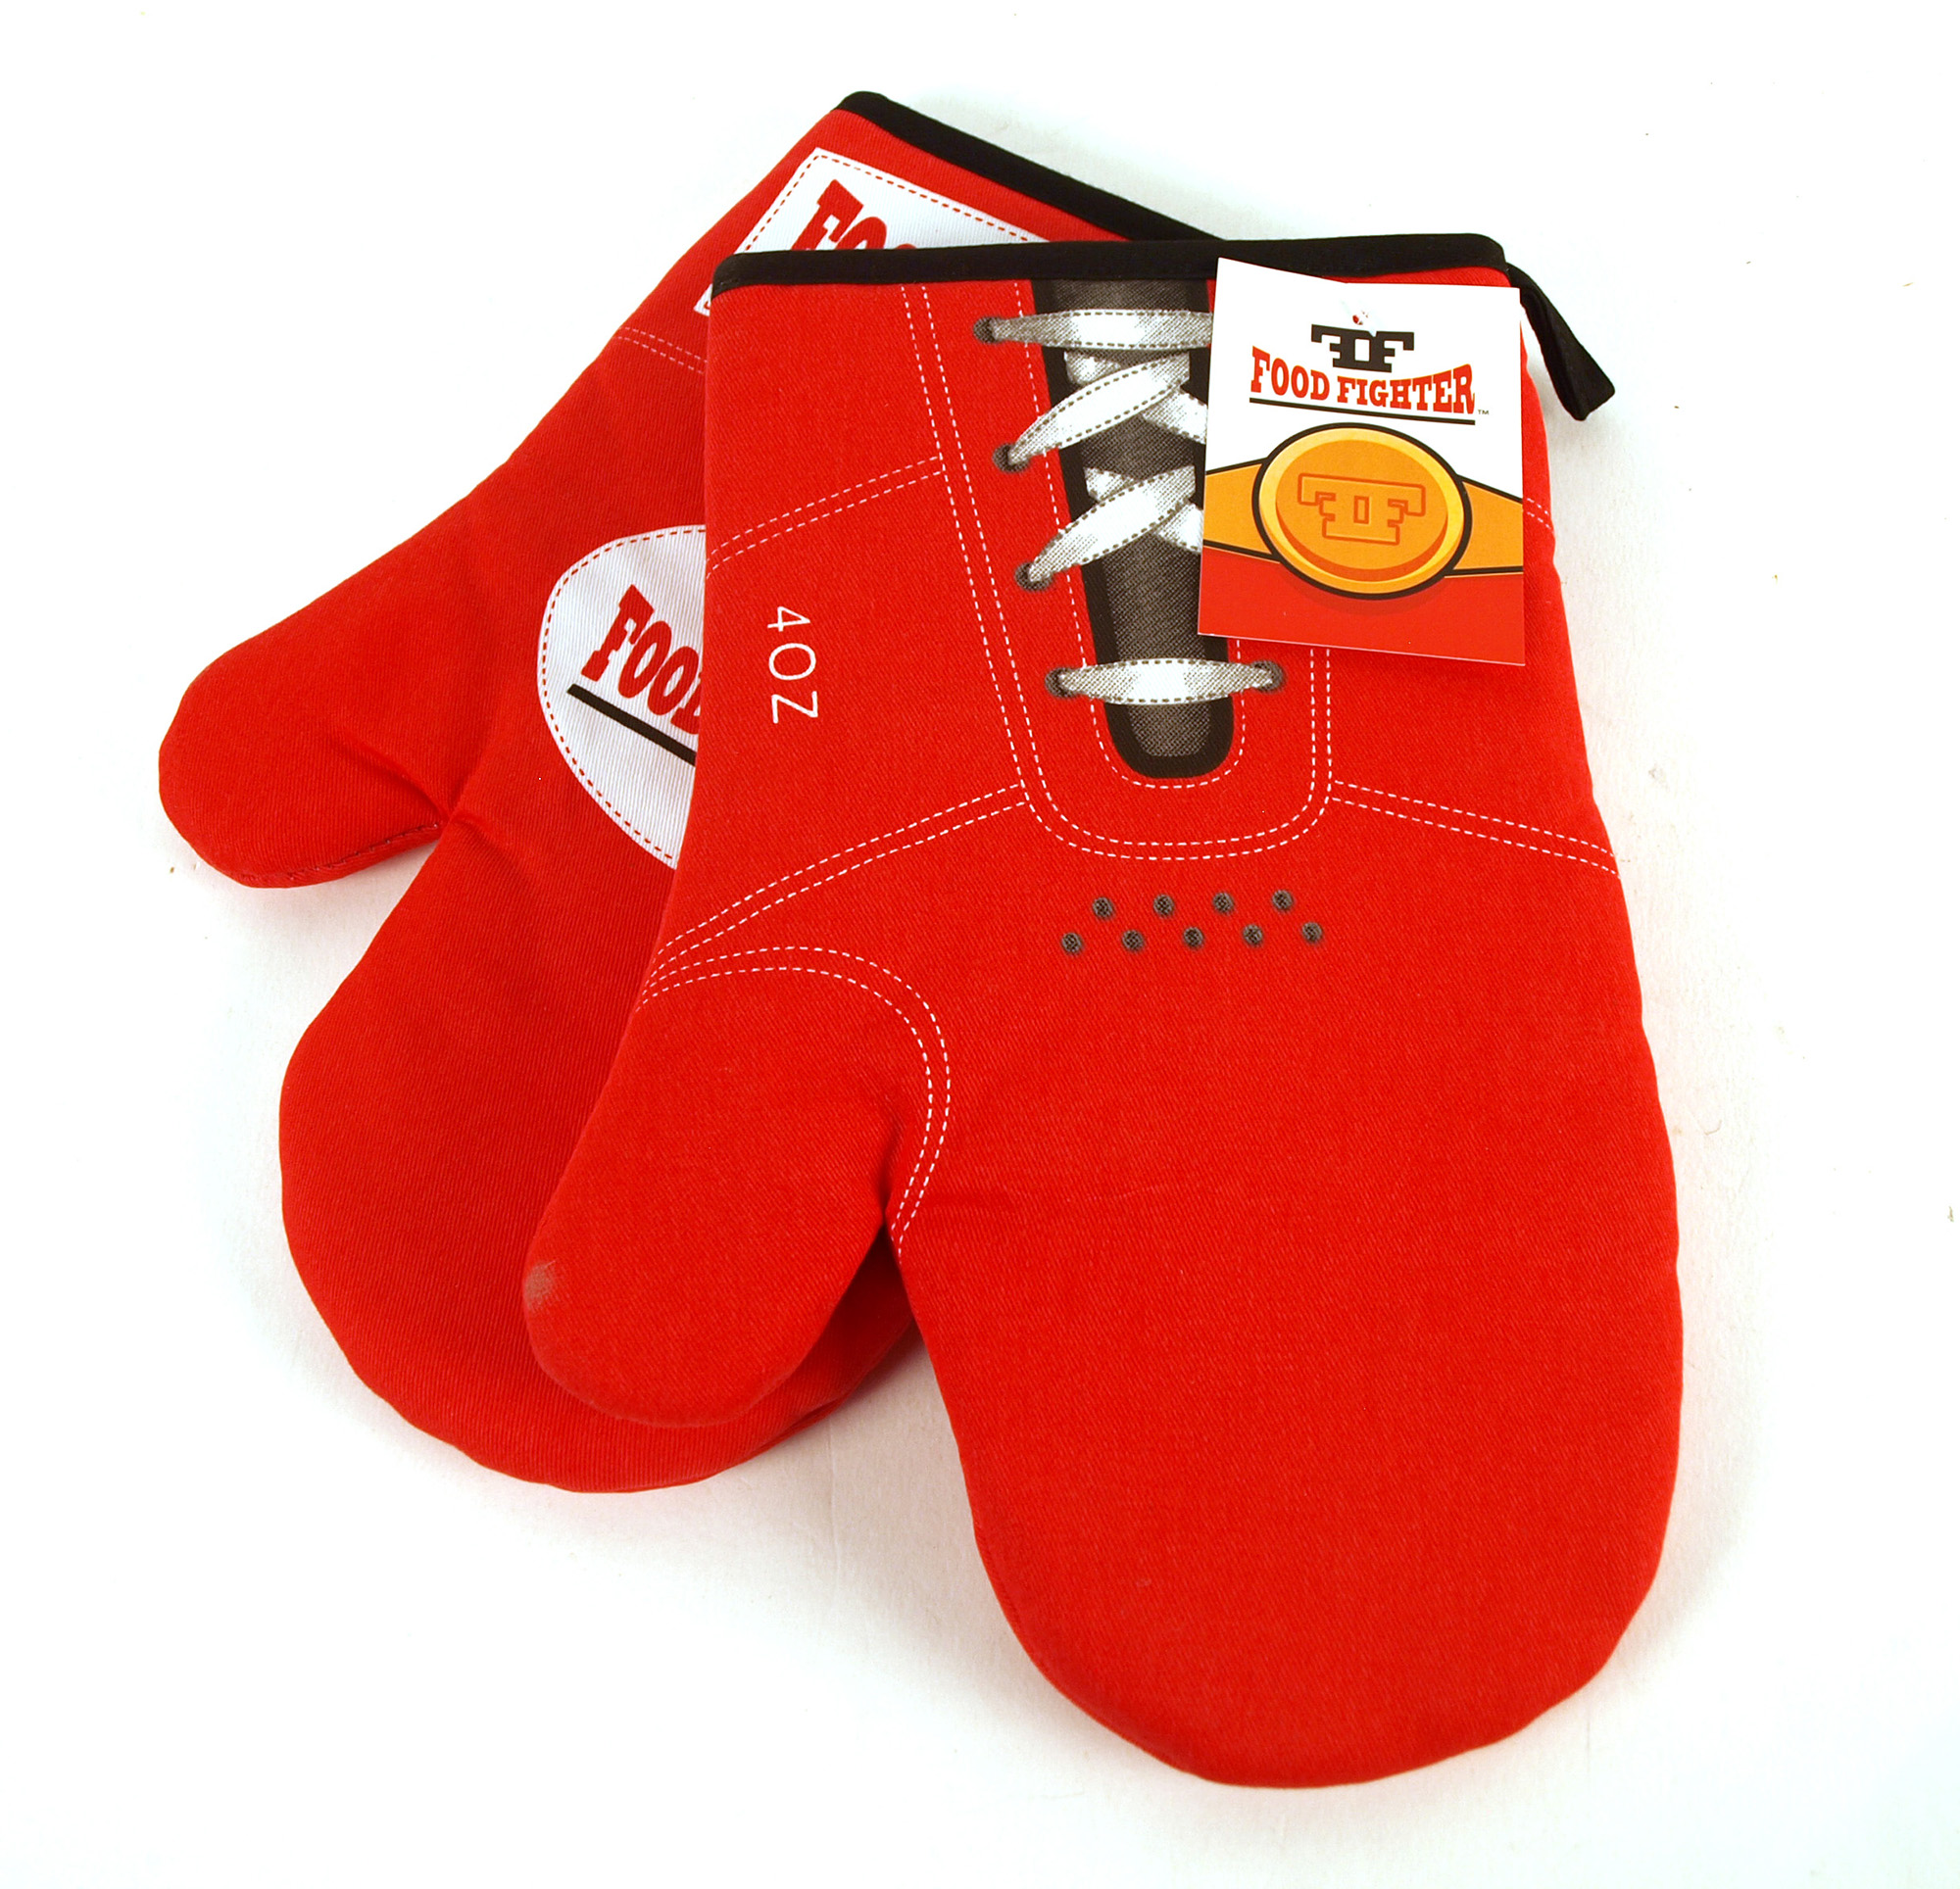 Boxing Oven Gloves The Food Fighter Pink Cat Shop